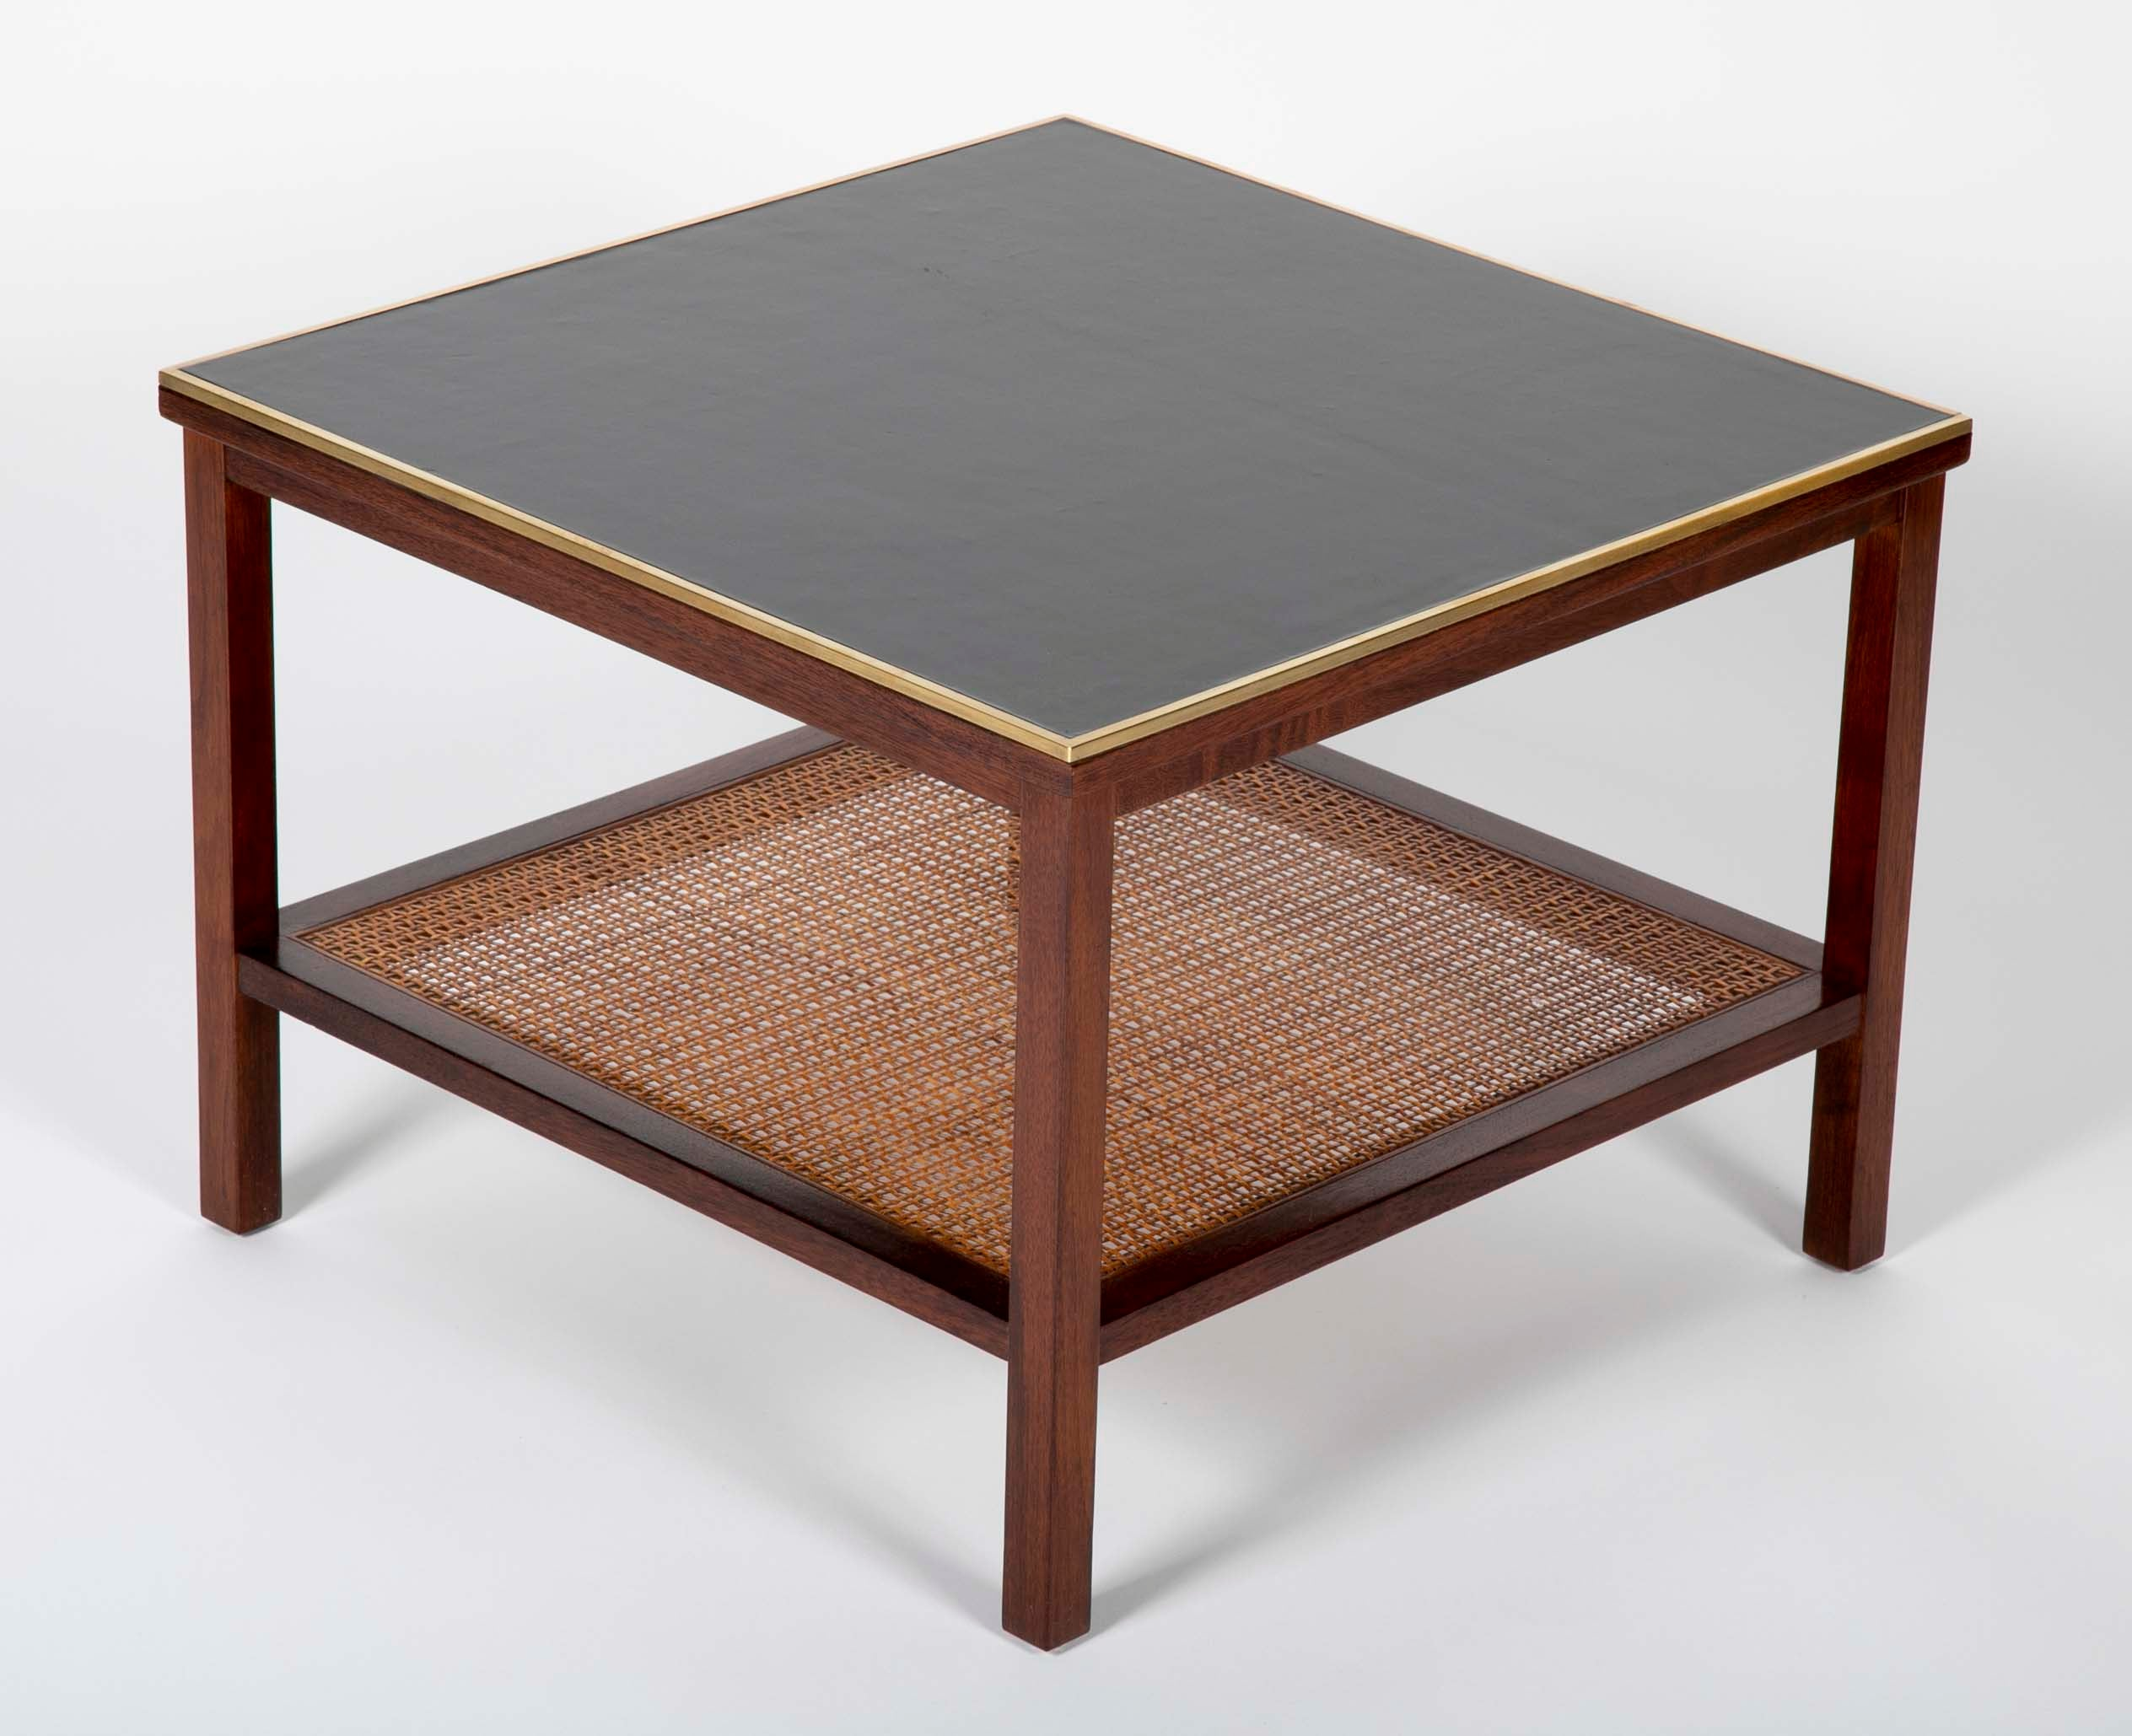 Pair of Walnut Paul McCobb Side Tables with Brass, Leather and Cane